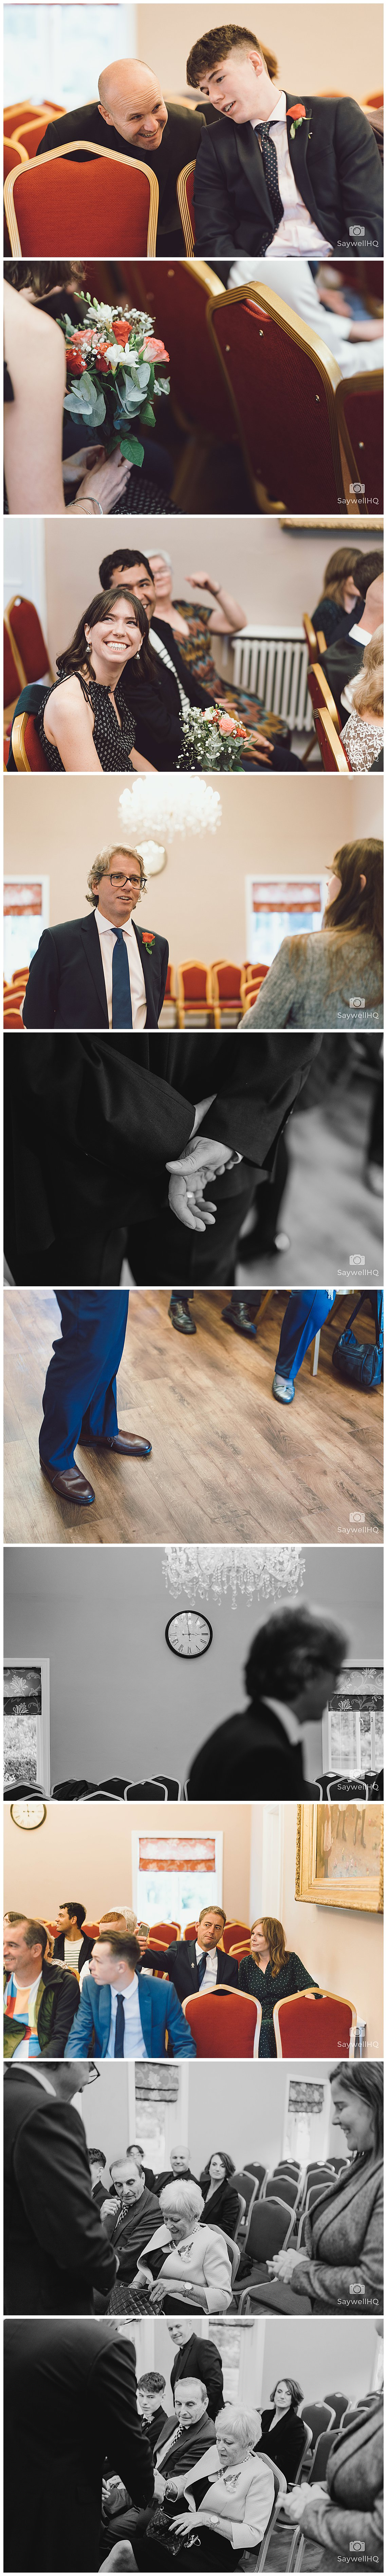 West Bridgford Wedding Photography - groom waits with guests in the ceremony room